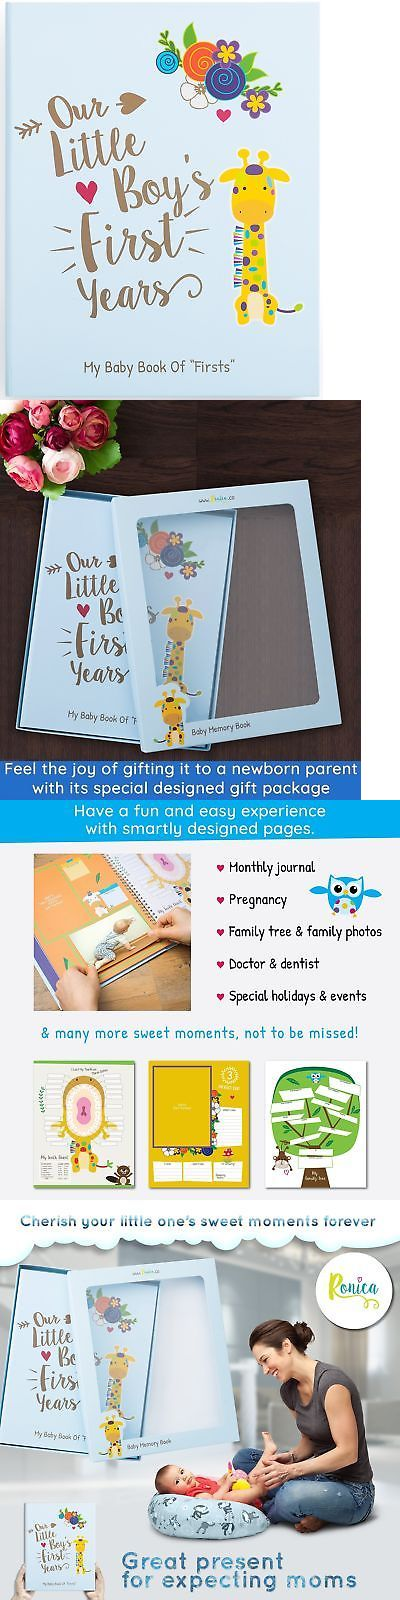 Keepsakes and Baby Announcements 117388: Ronica Memory Book For Baby Boy, Photo Album, Easy To Use Keepsake Scrapbook,... -> BUY IT NOW ONLY: $40.98 on eBay!